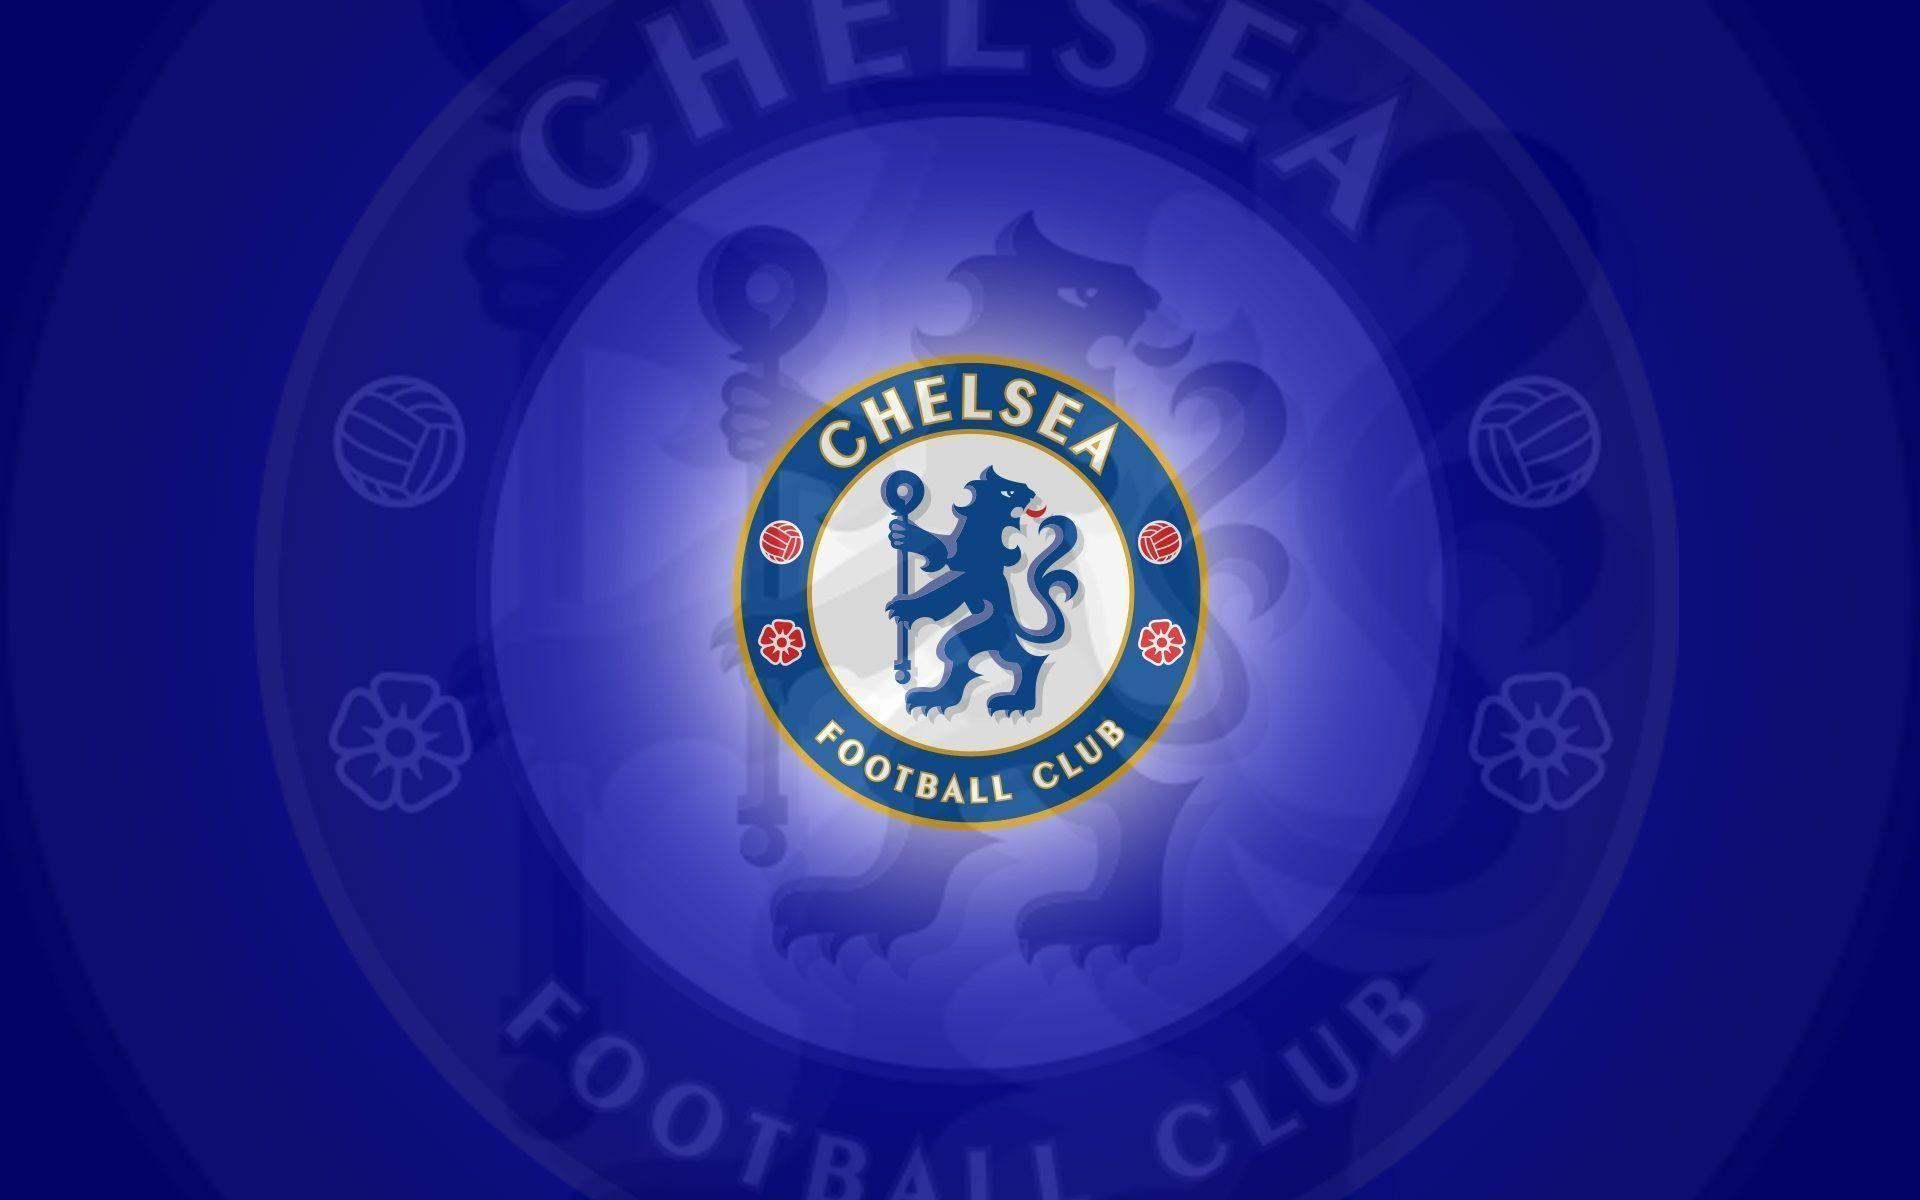 Chelsea Logo Wallpapers 2015